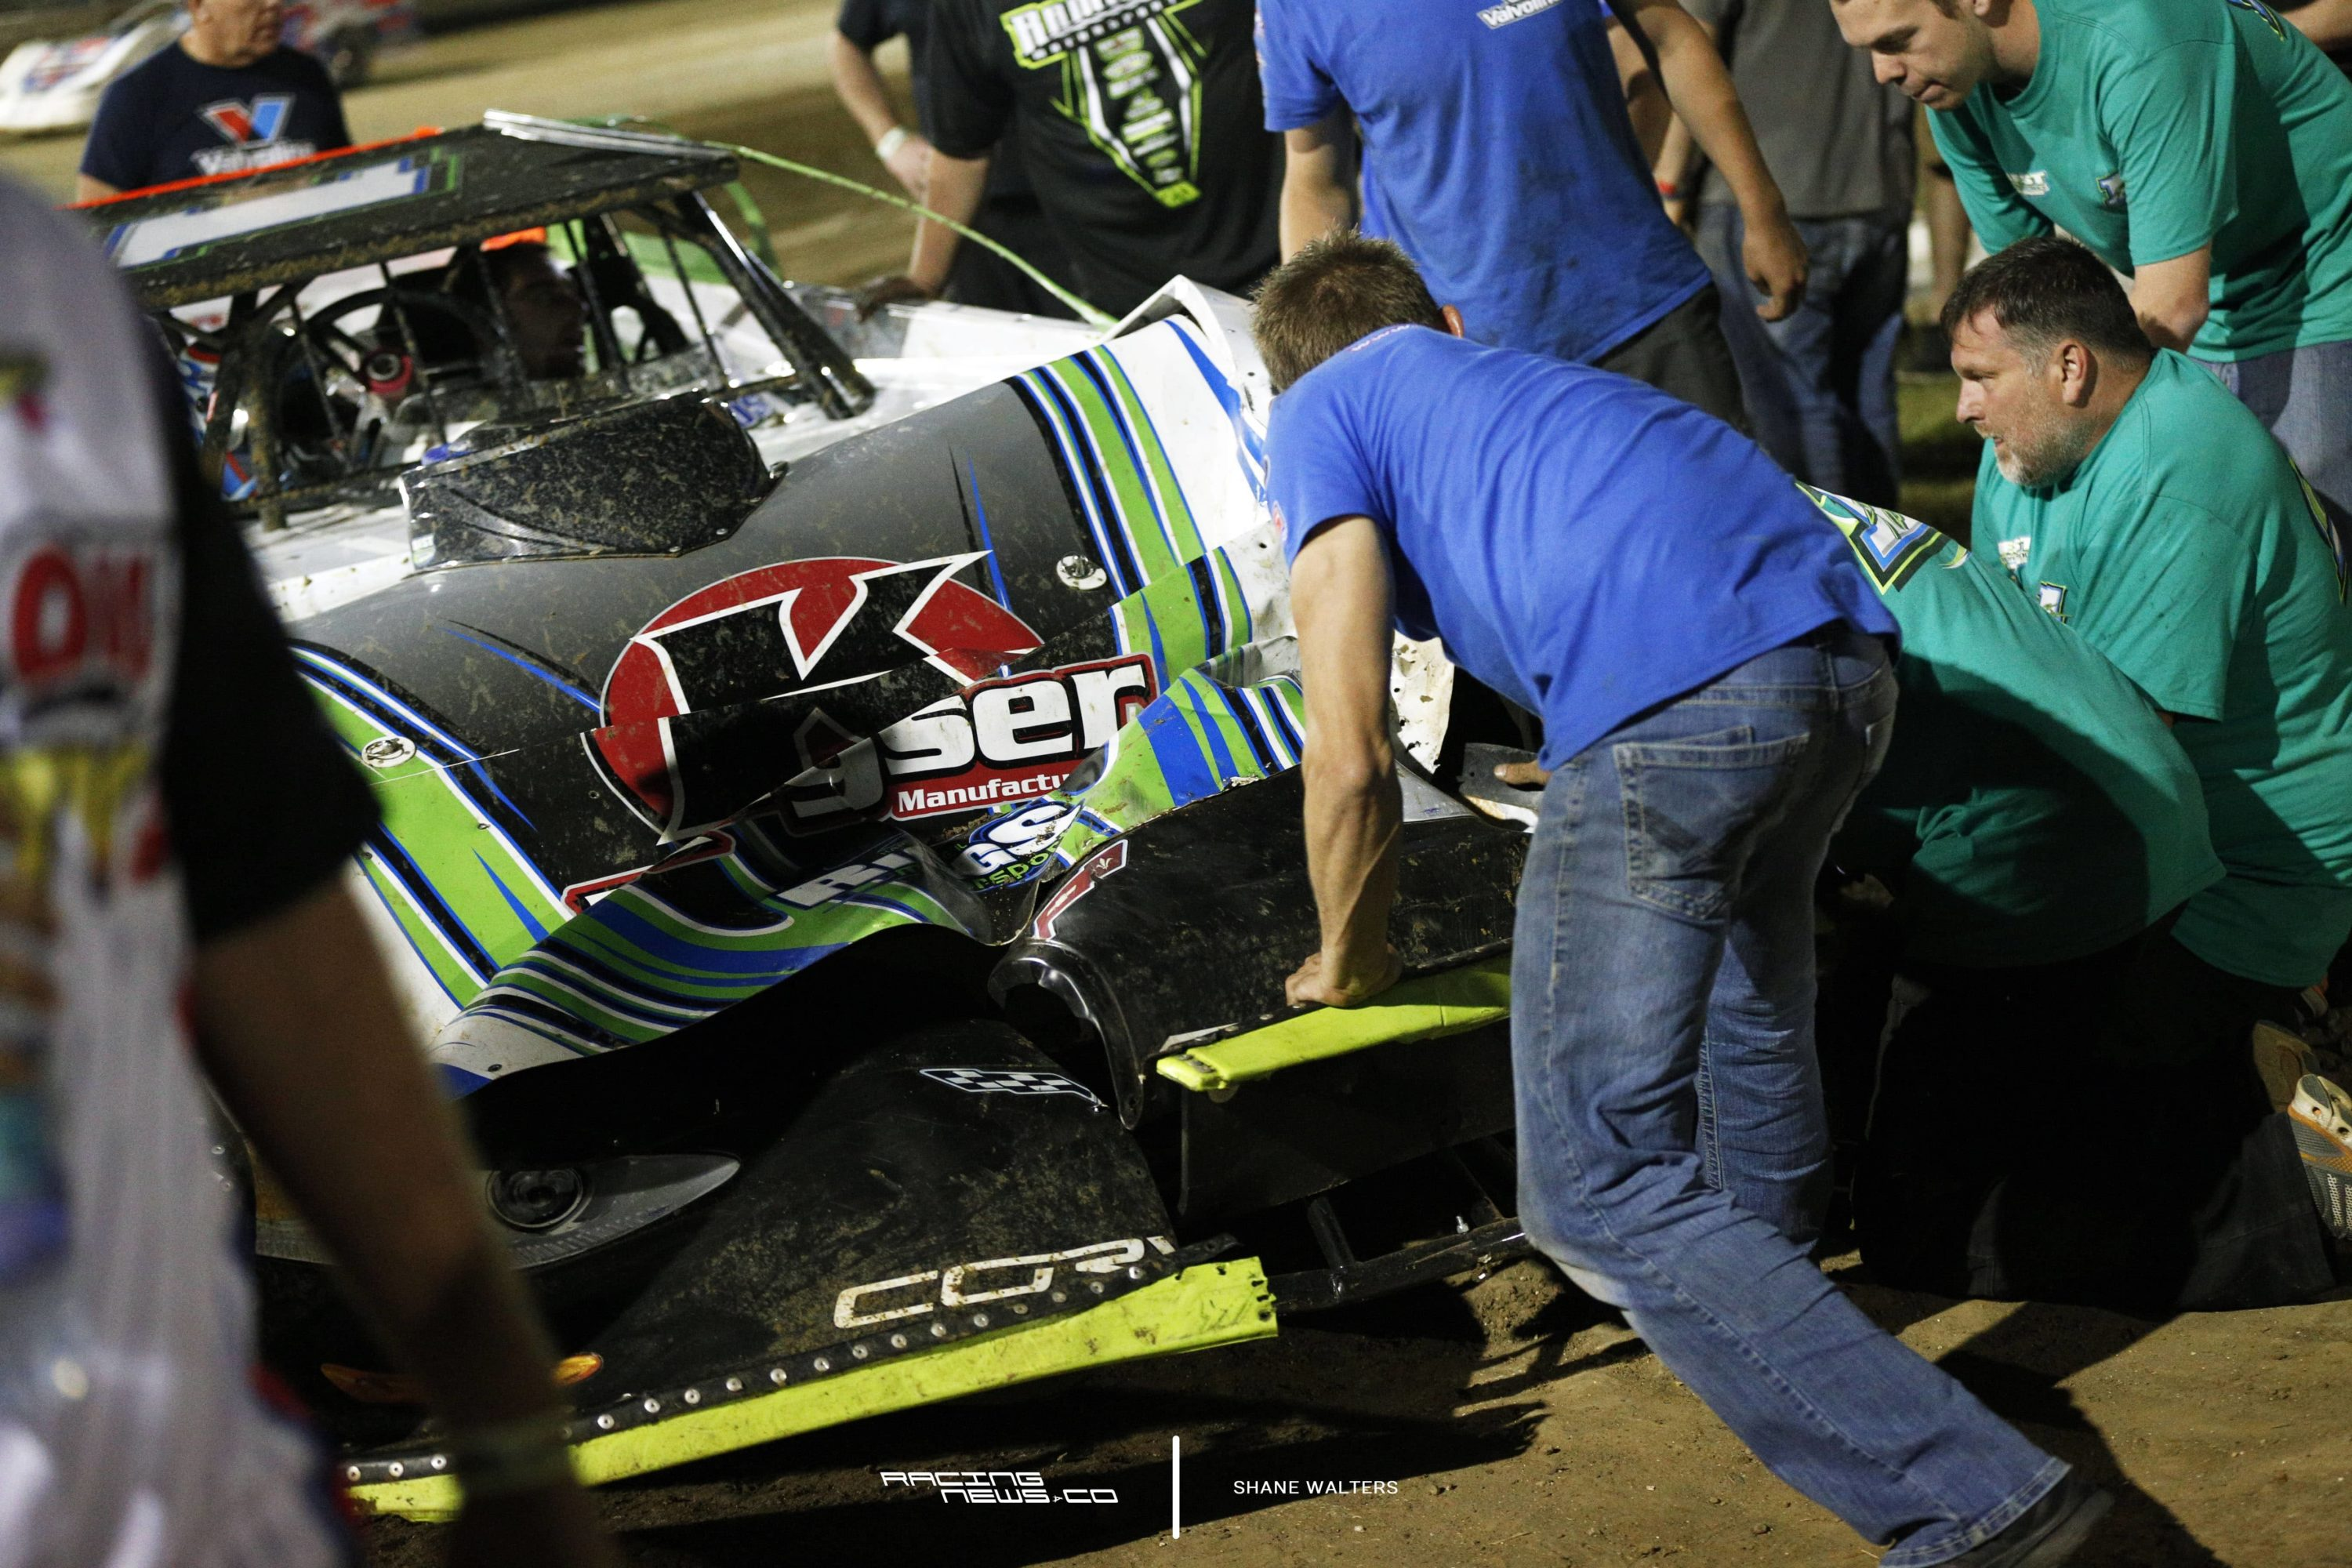 Statement from Mark Richards after Bubba Raceway Park Pitlane